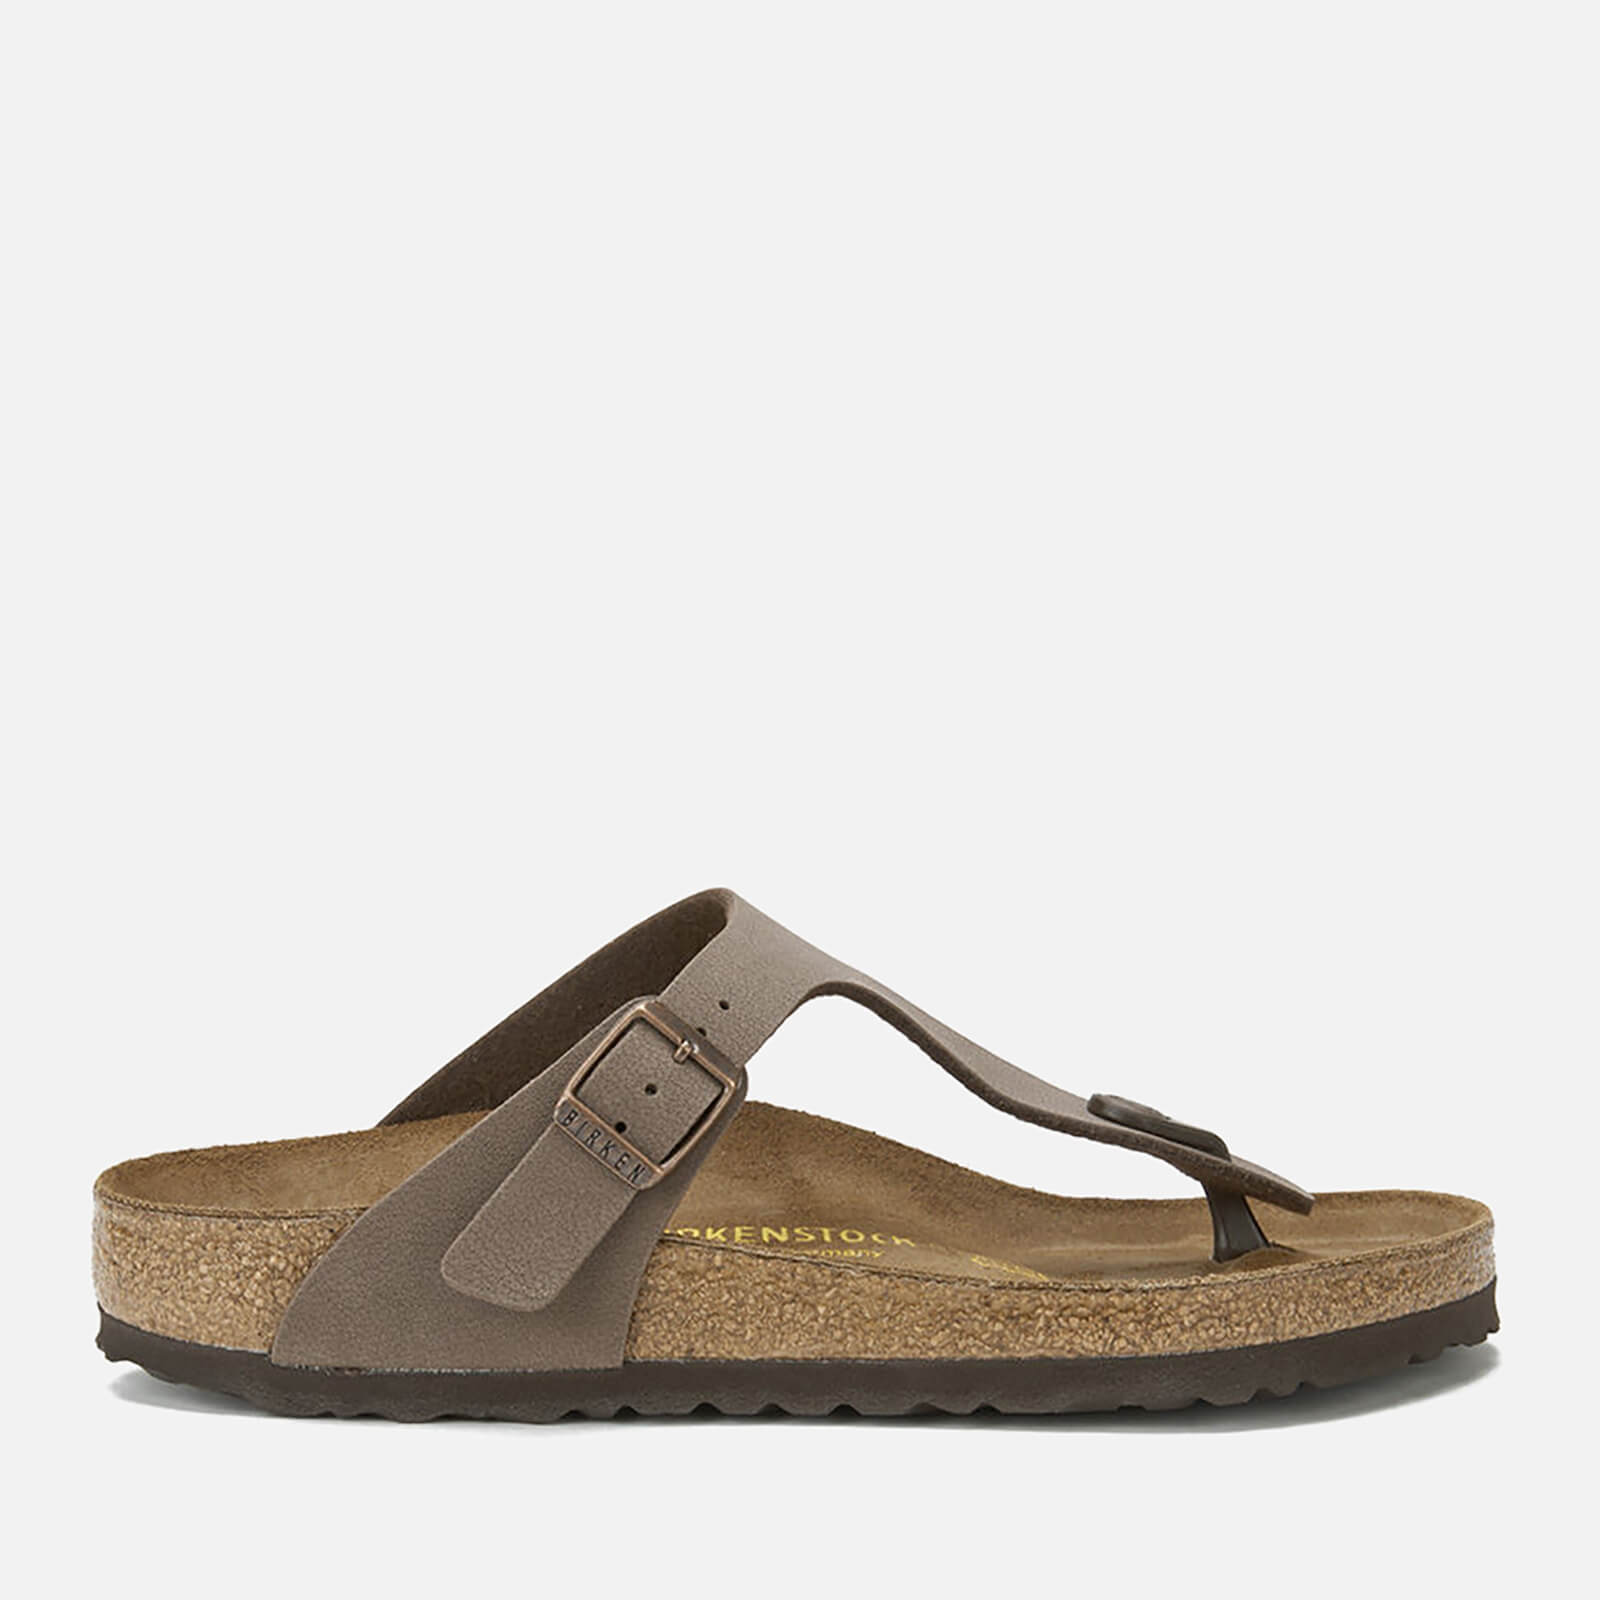 b28097baf76 Birkenstock Buyer s Guide  Everything You Need to Know - Allsole